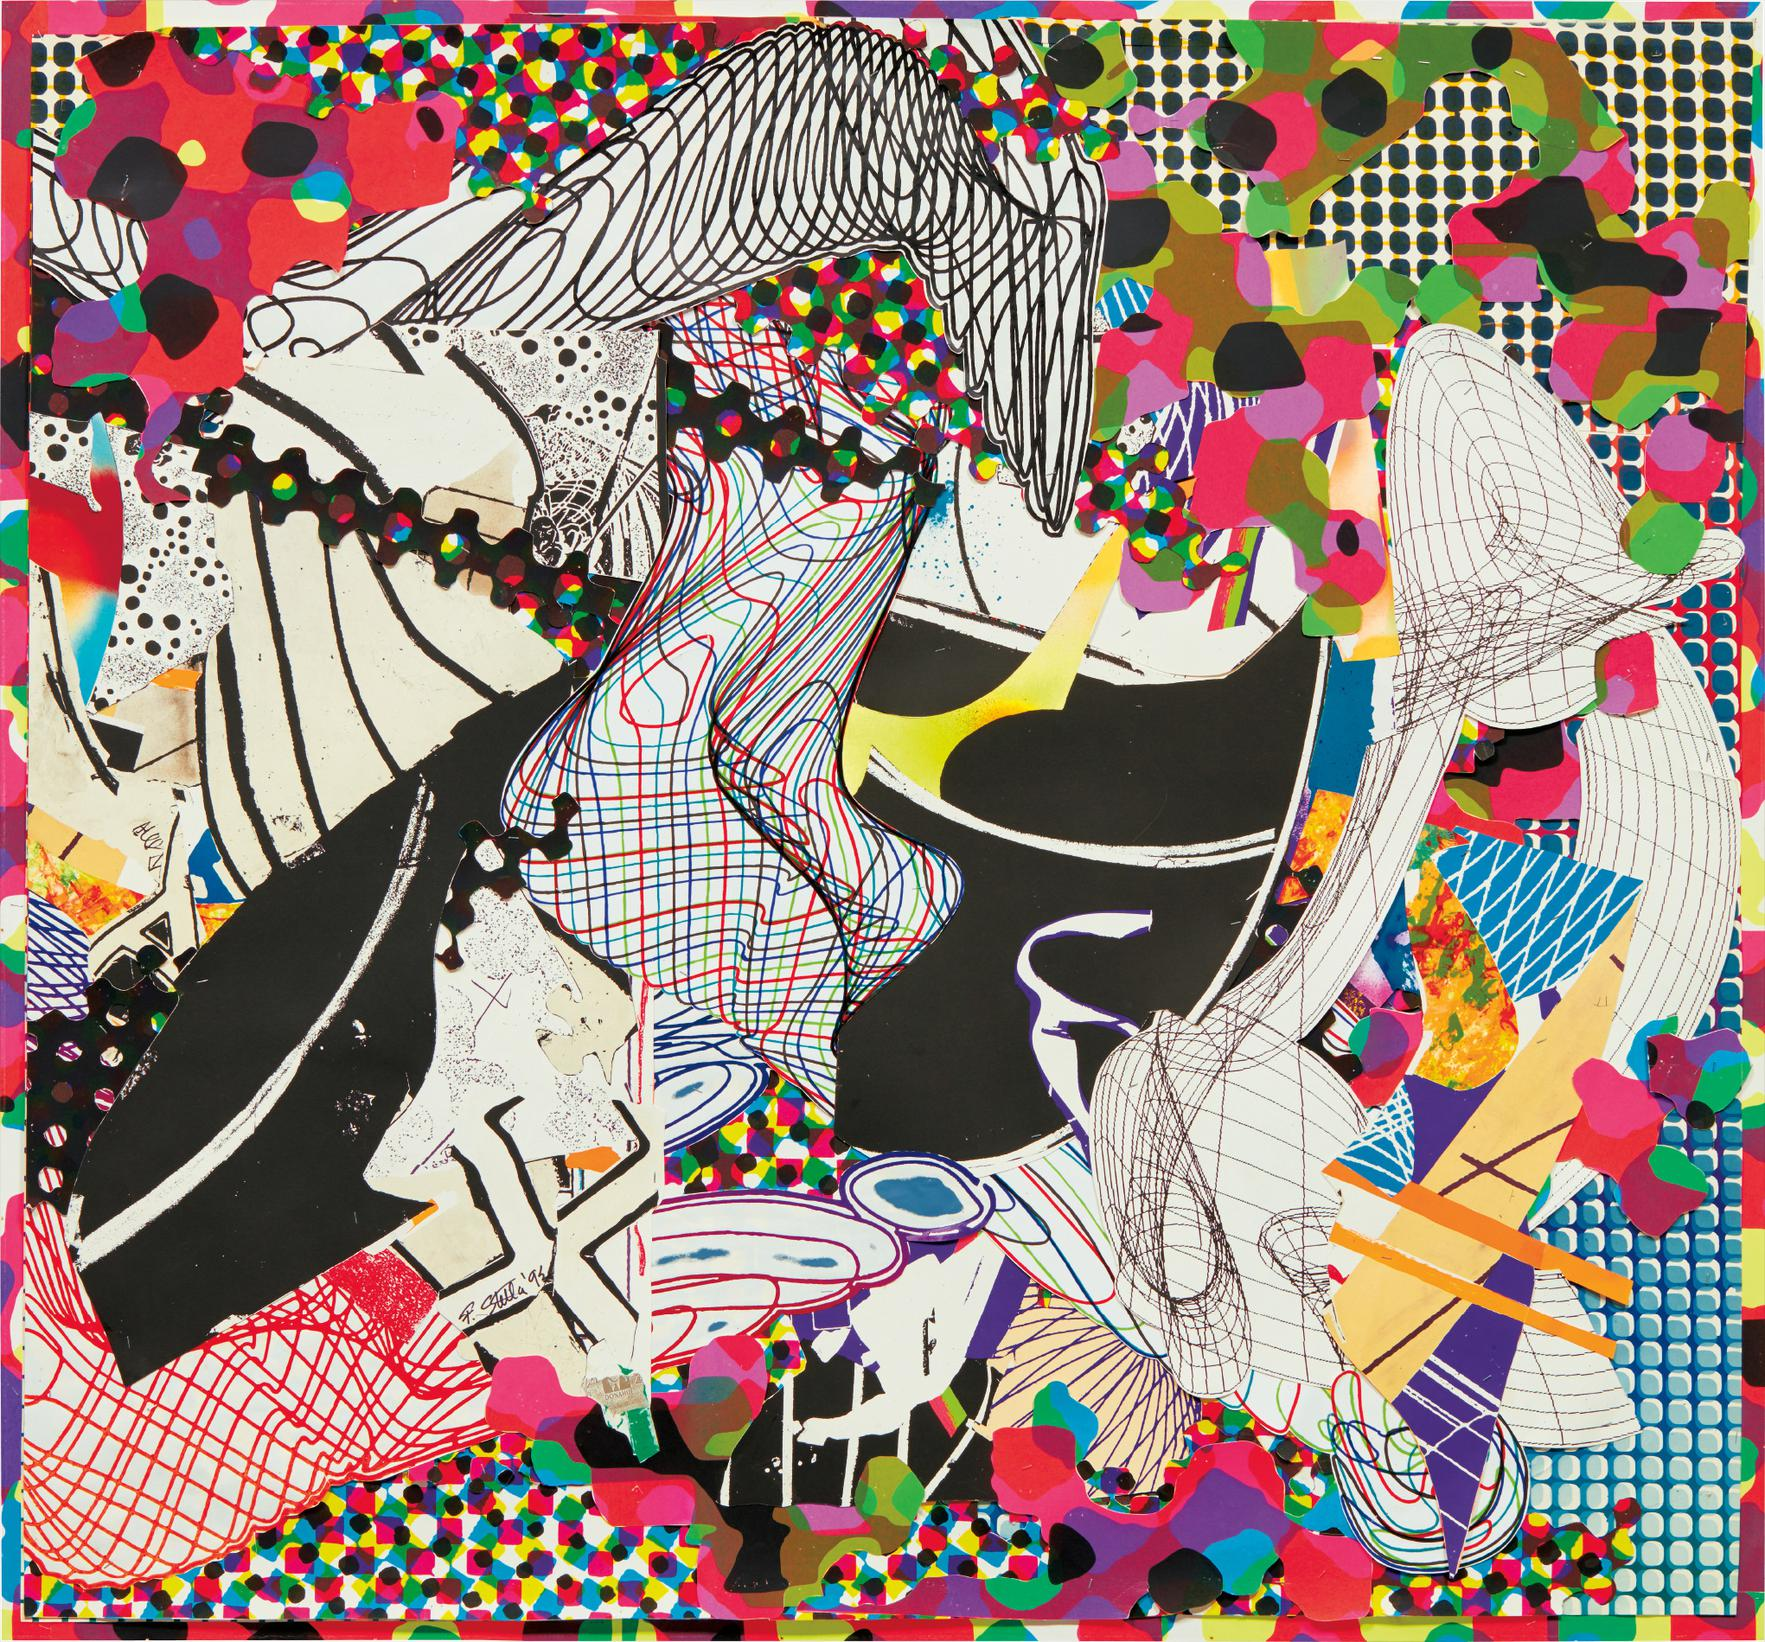 Frank Stella-Stapling Down And Cutting Up #2-1992